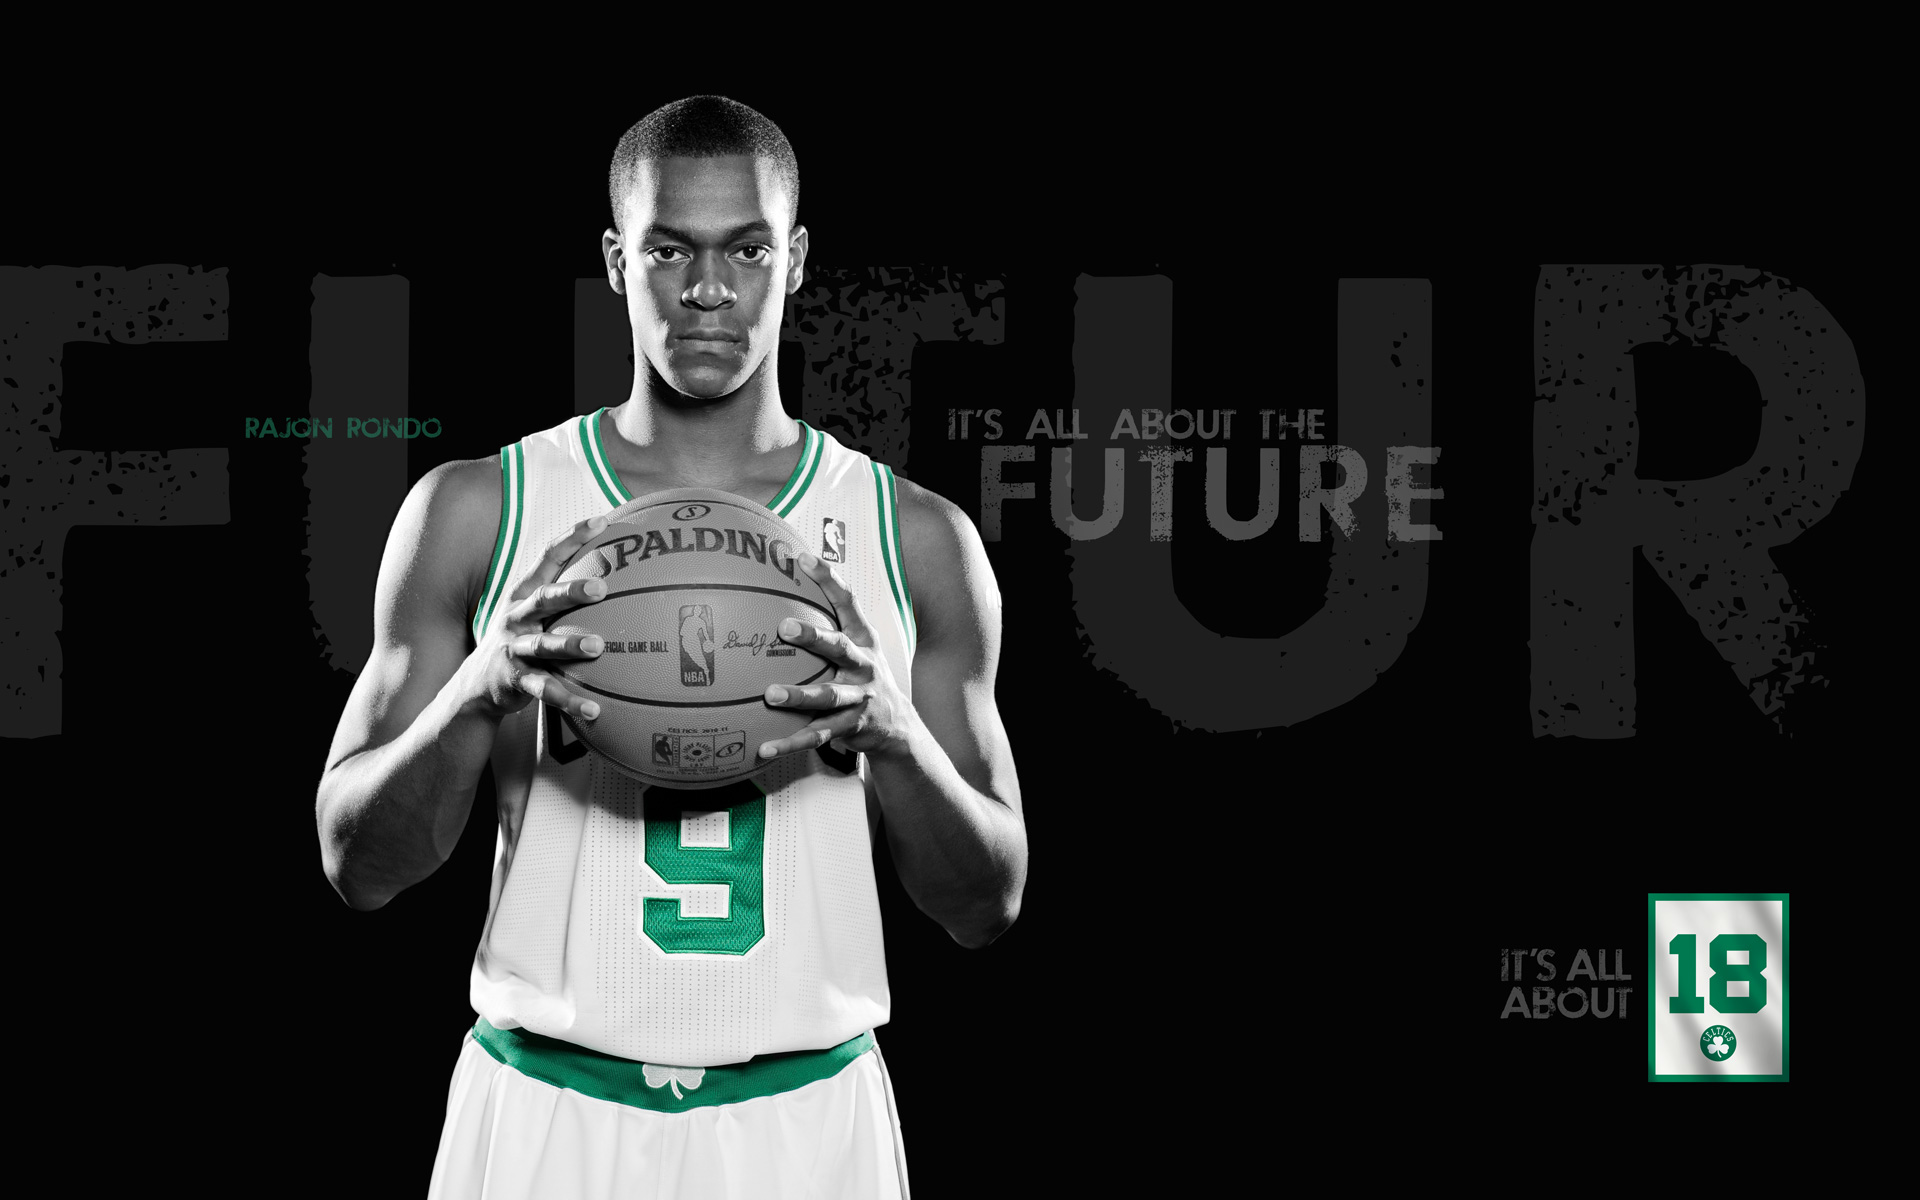 [44+] Boston Celtics HD Wallpapers On WallpaperSafari